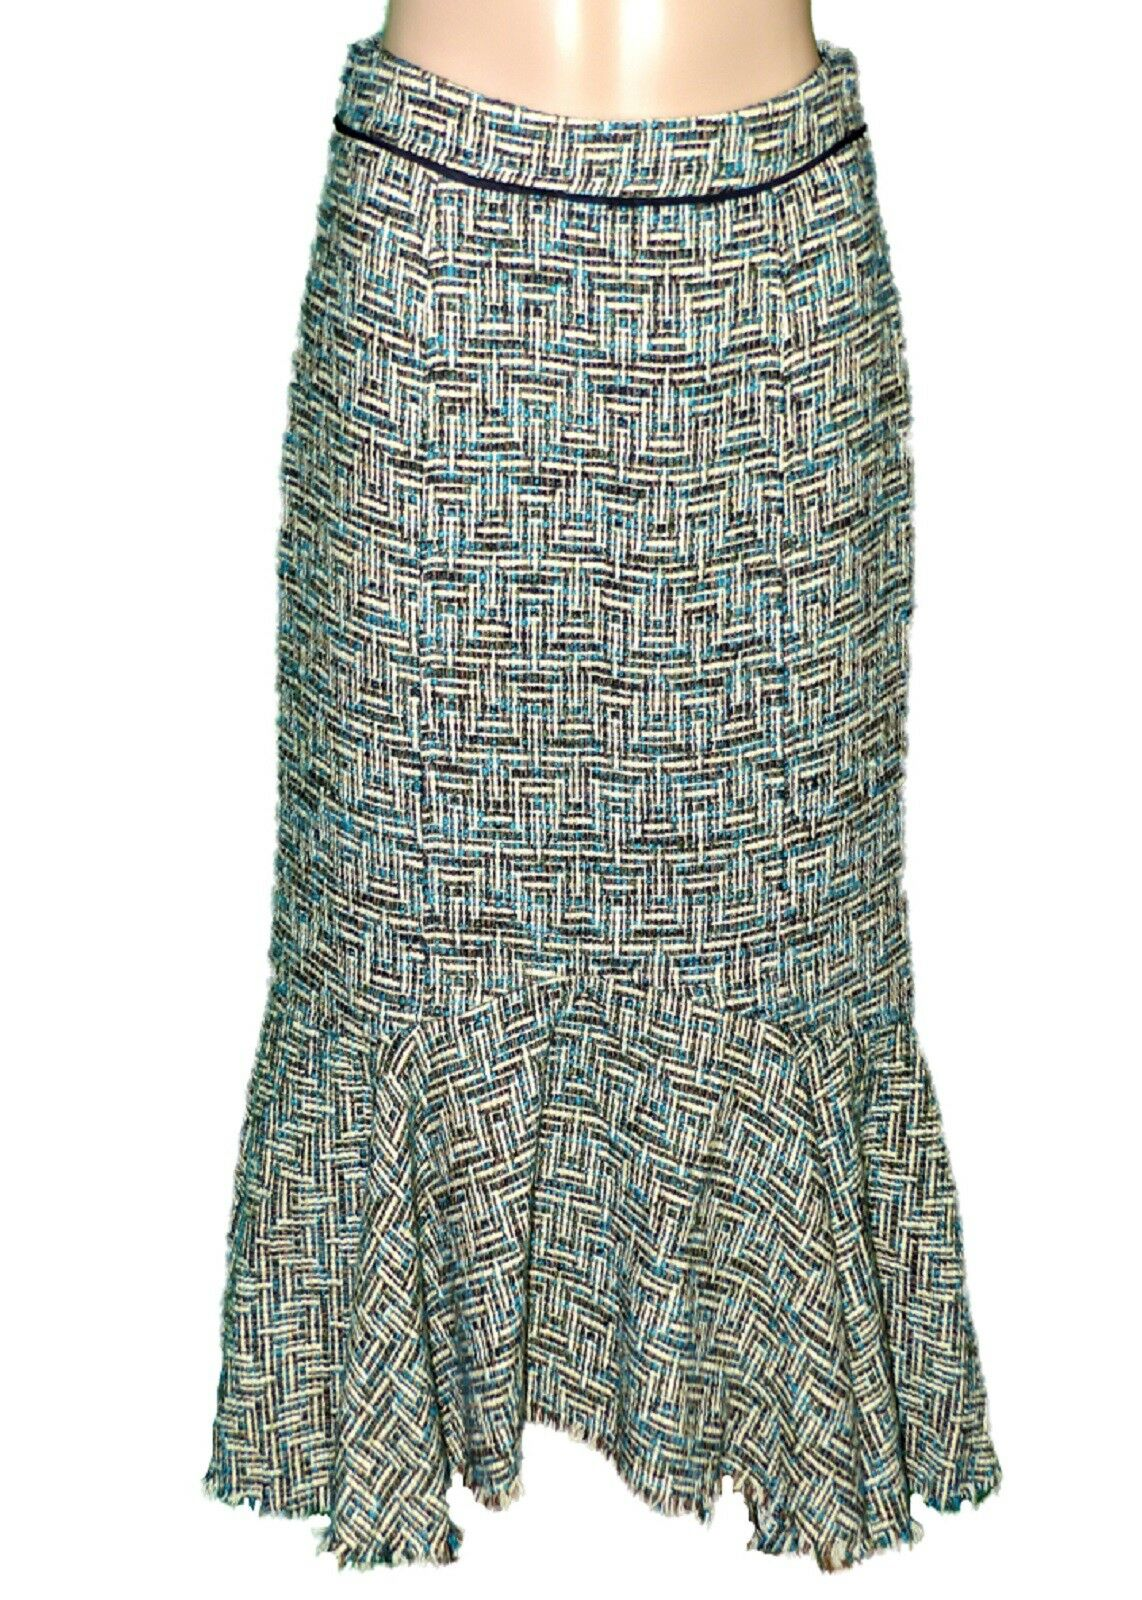 ANTHROPOLOGIE Elevenses Womens Skirt Teal Green Tweed Sz 2 Lined EUC